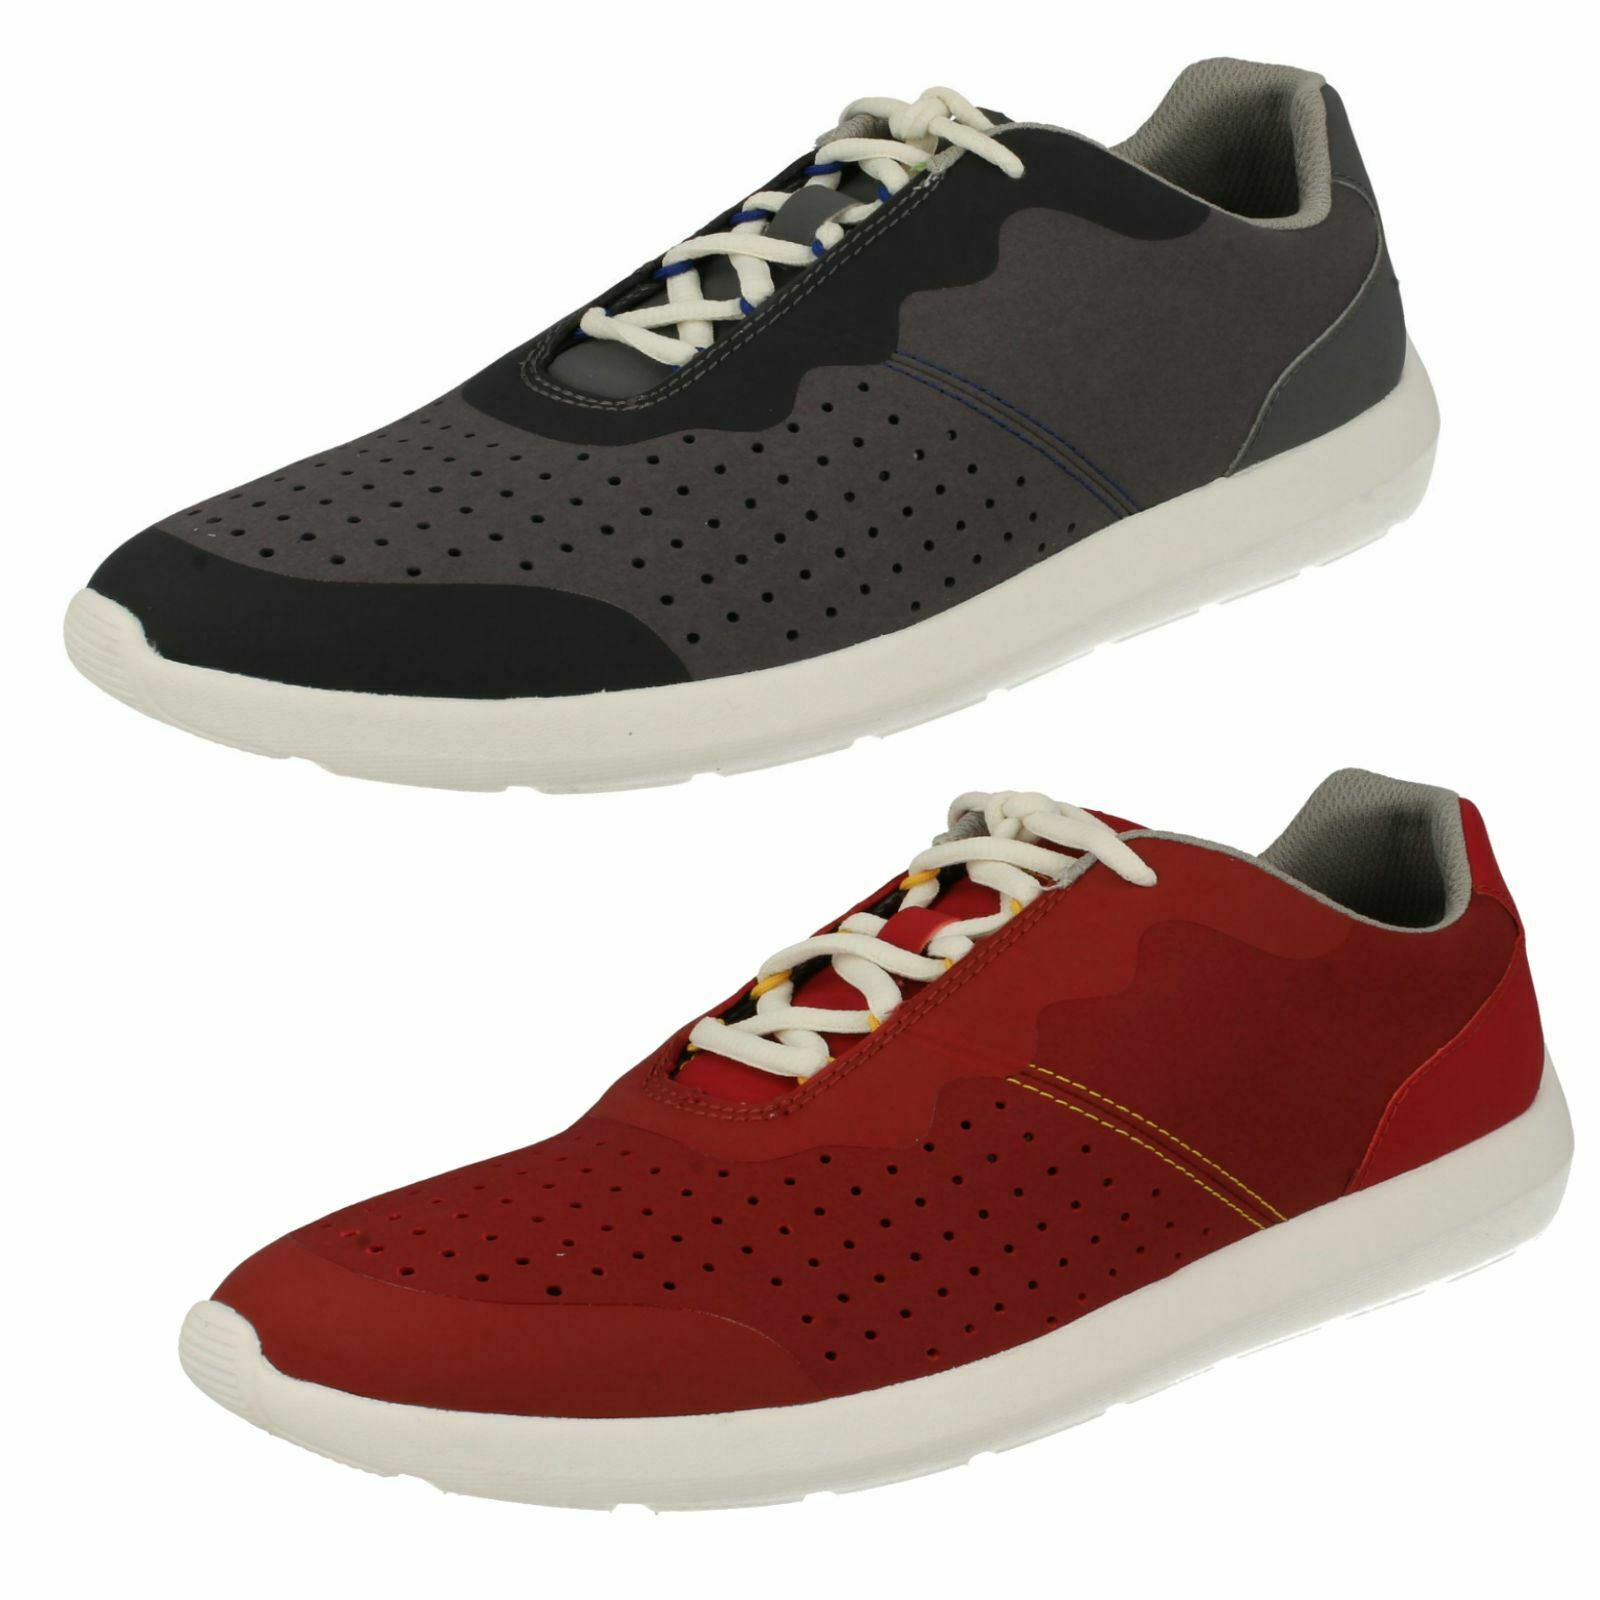 new concept 2b16b 657f9 Mens Clarks Cloudsteppers Casual Lace Up Textile & Synthetic ...